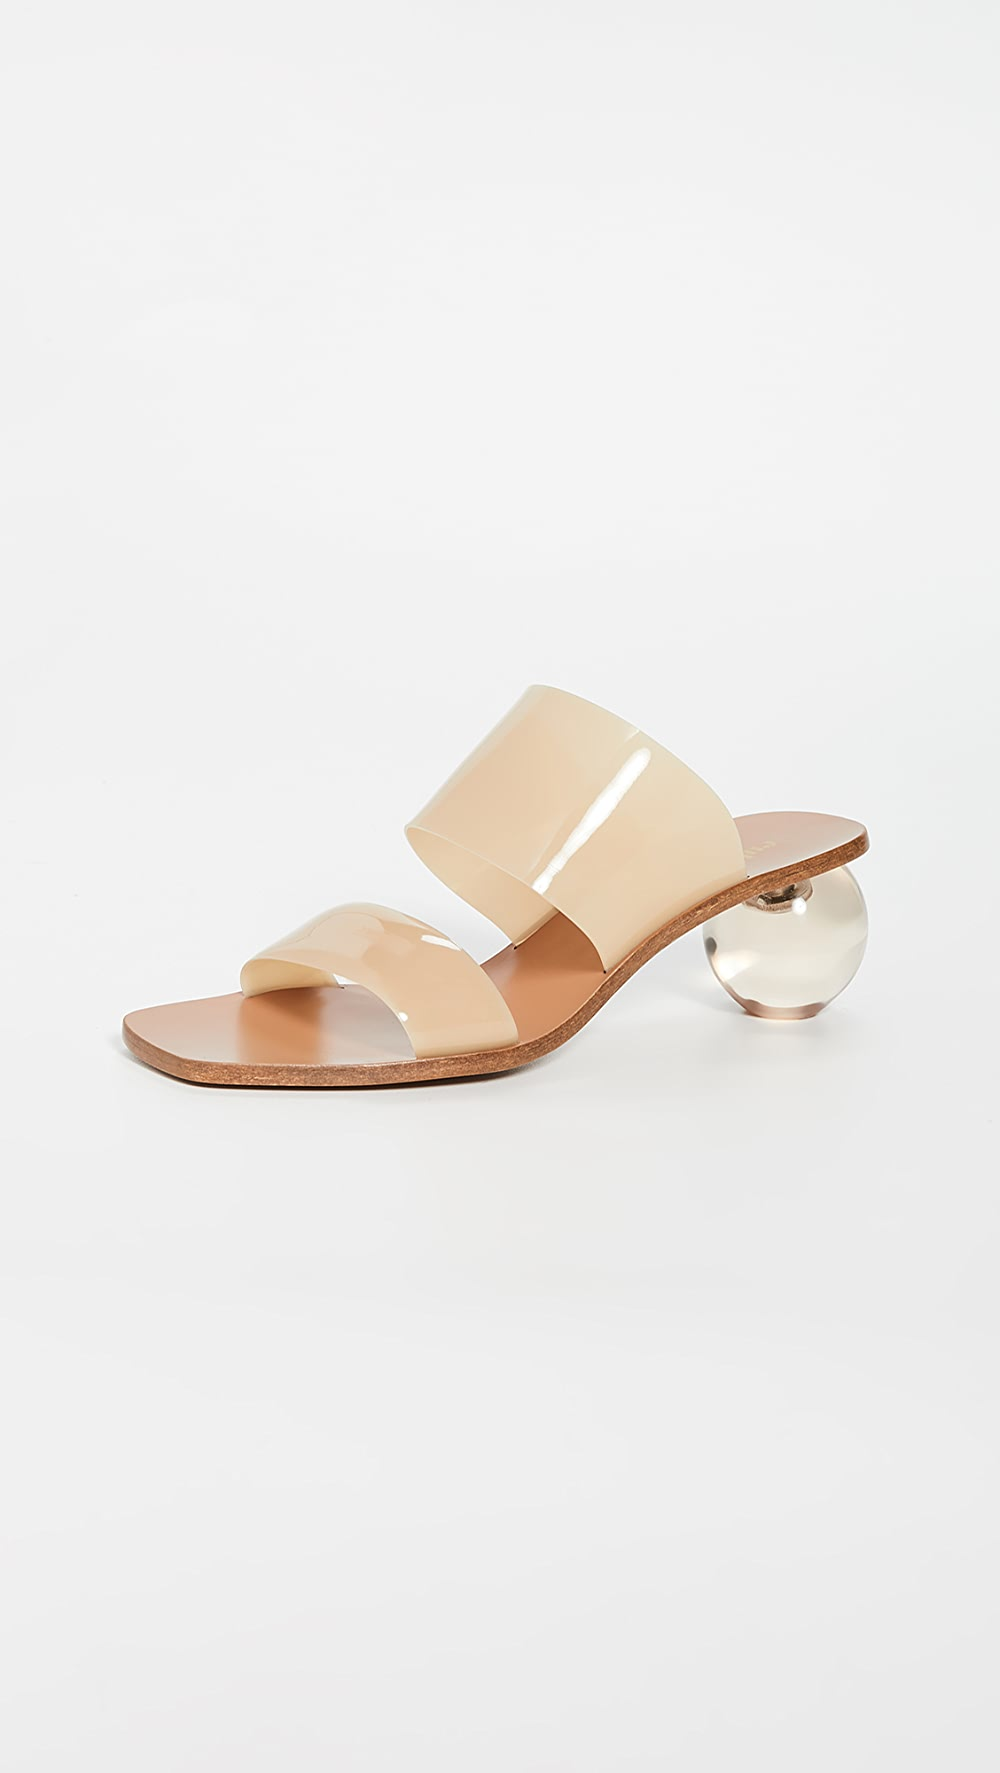 Competent Cult Gaia - Jila Sandals To Adopt Advanced Technology